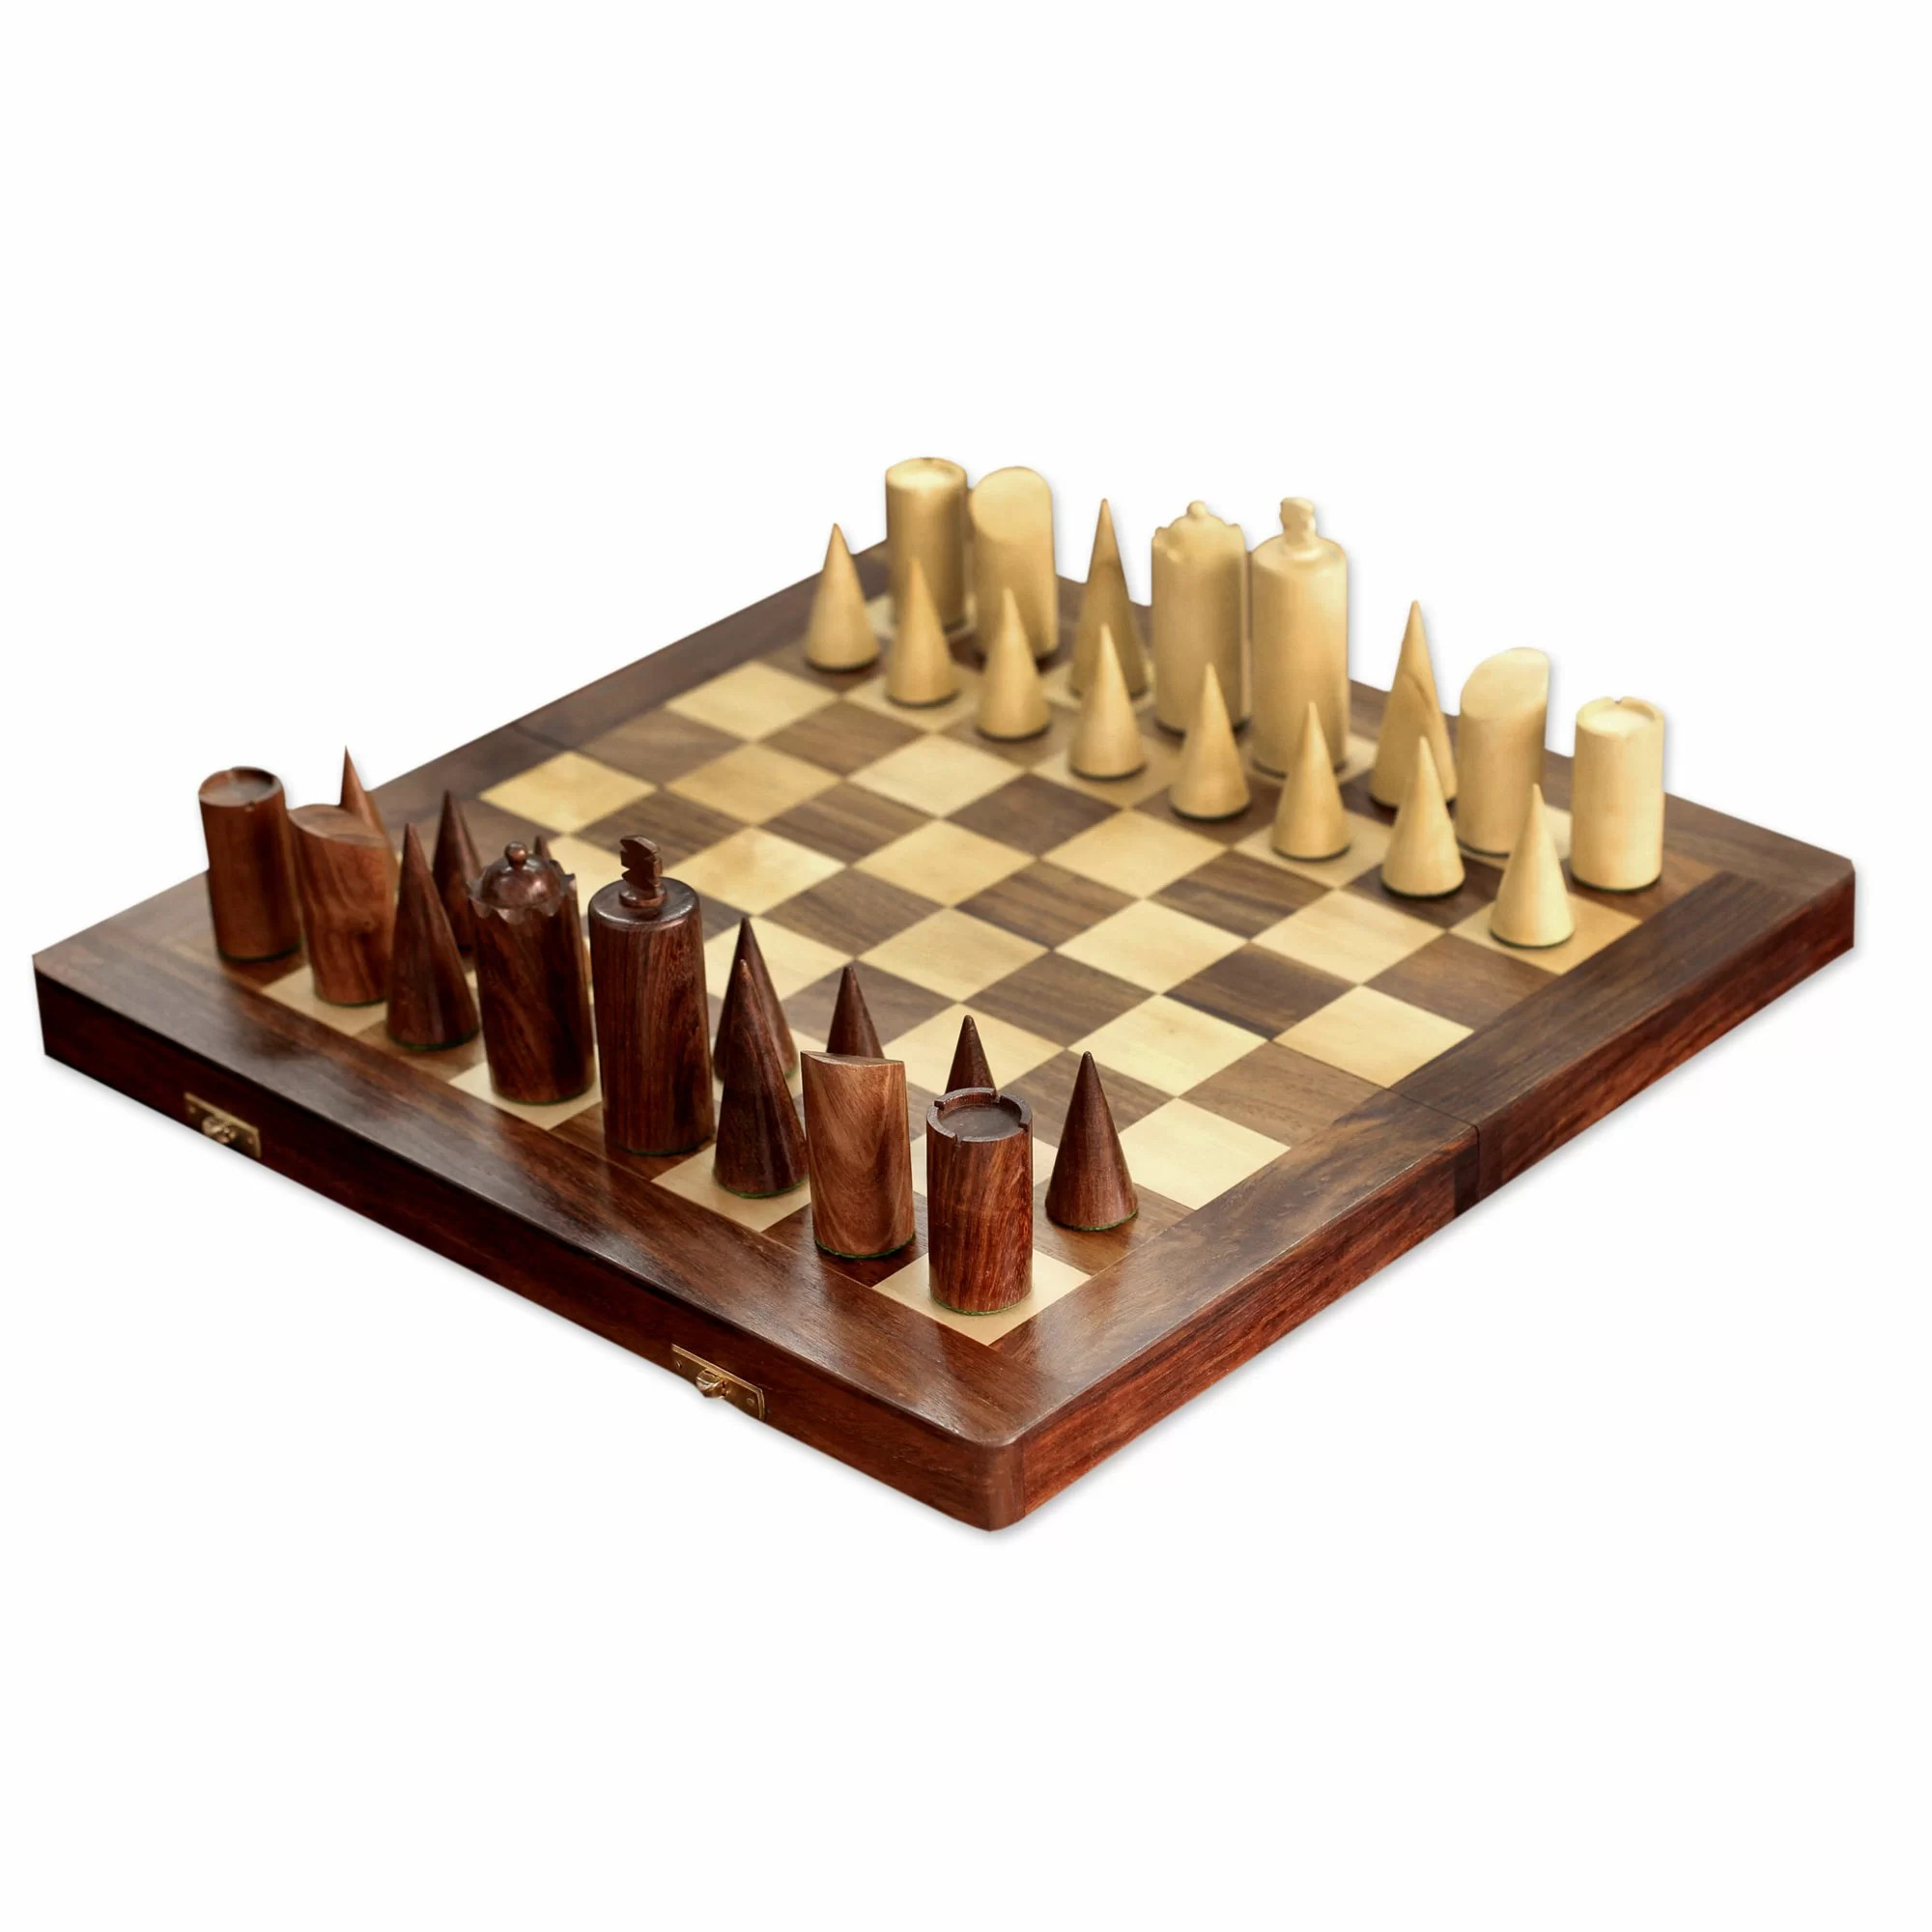 Fancy Chess Set Novica Khyali Ram Decorative Hand Carved Wood Chess Set